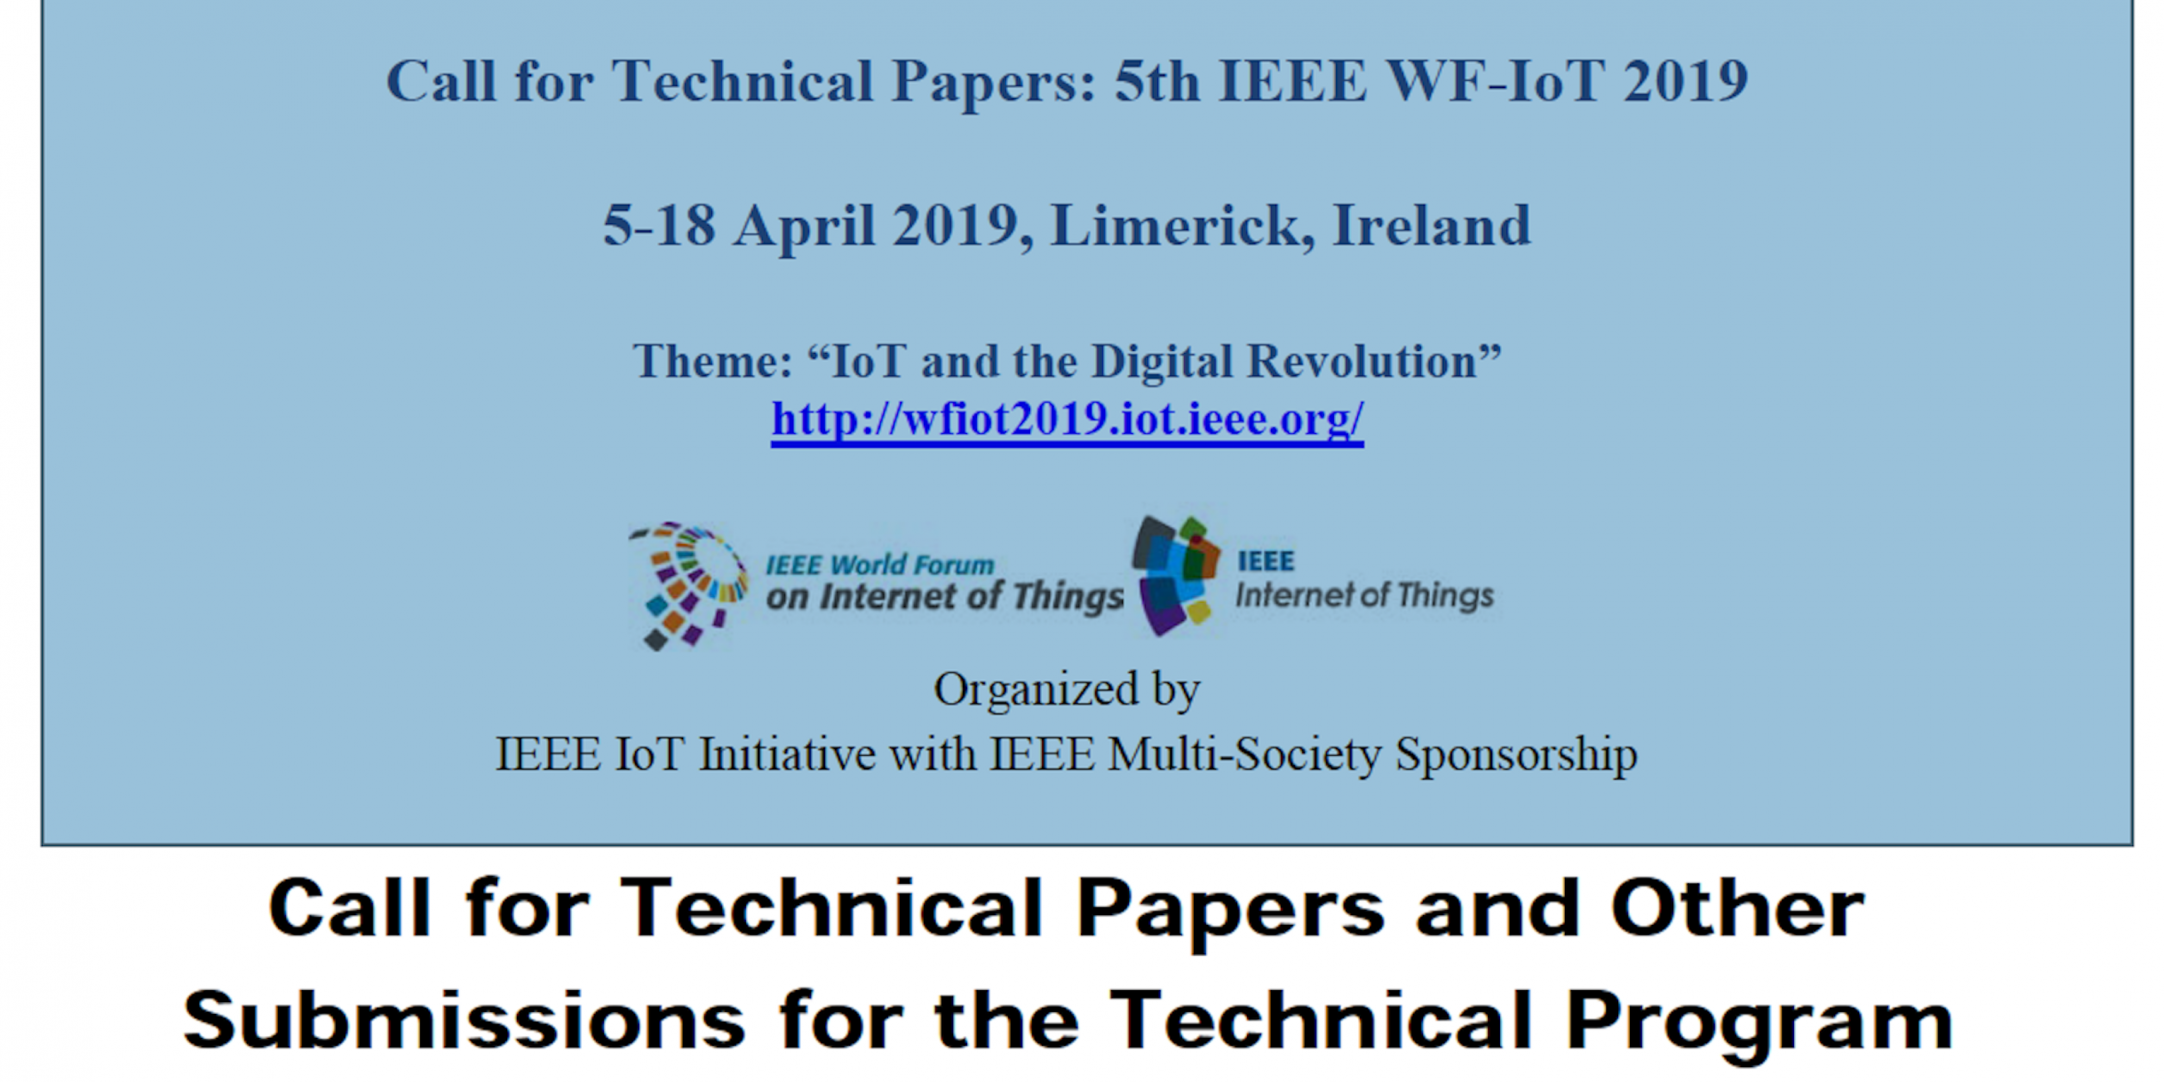 Submission Deadlines Extended for WF-IoT 2019! | IEEE